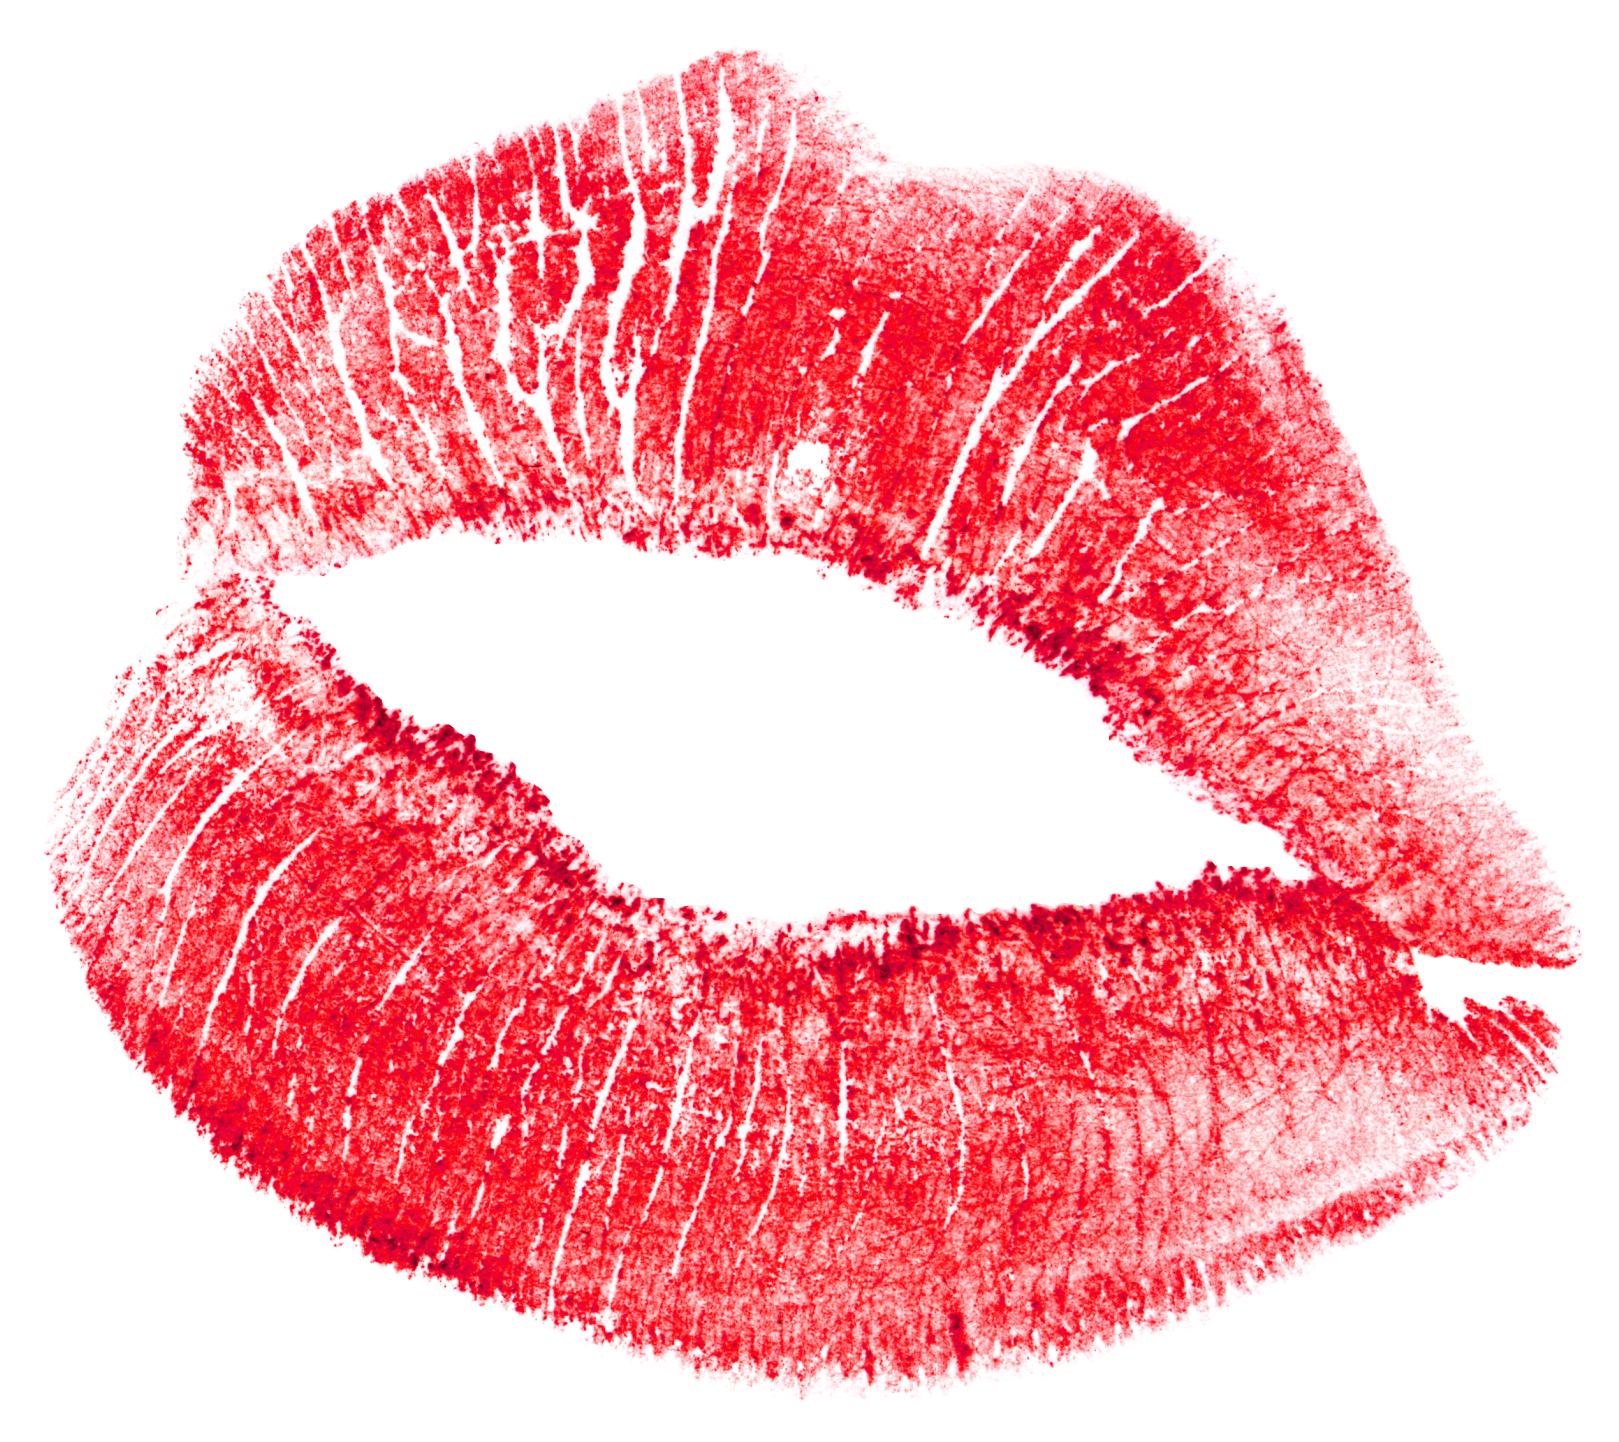 Kiss mark png. Lips image free download